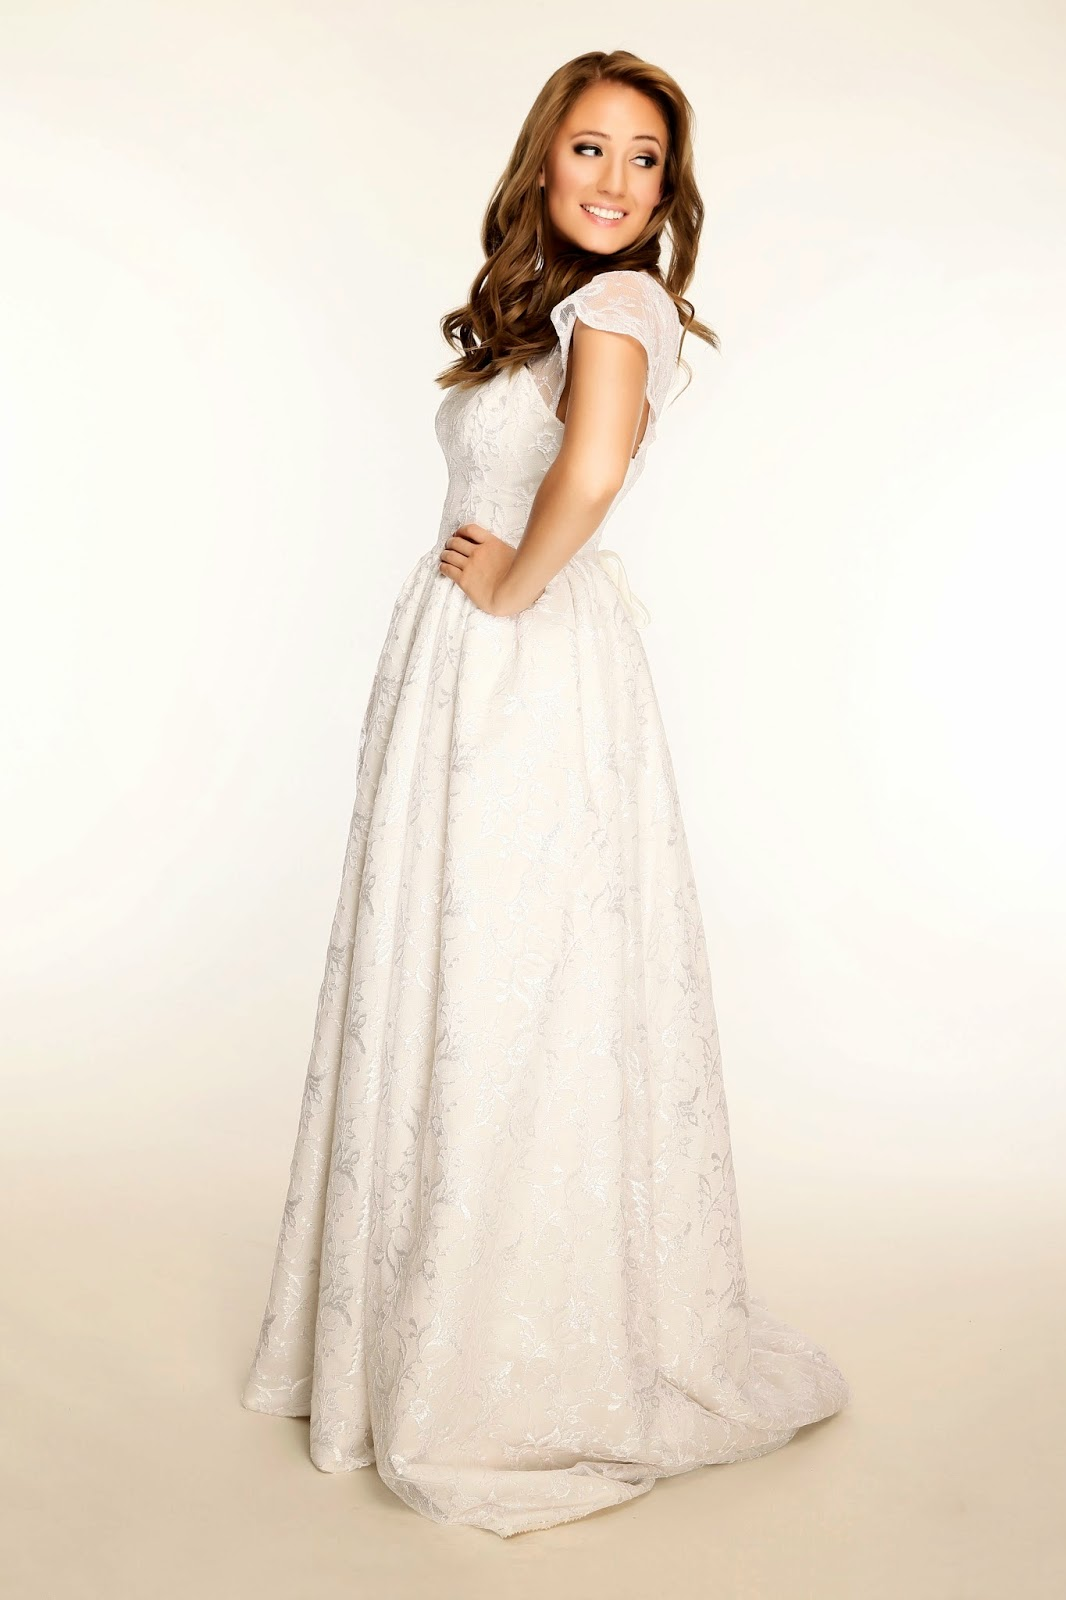 Fresh Modesty: Stasia Bridal Gowns... 10% off!